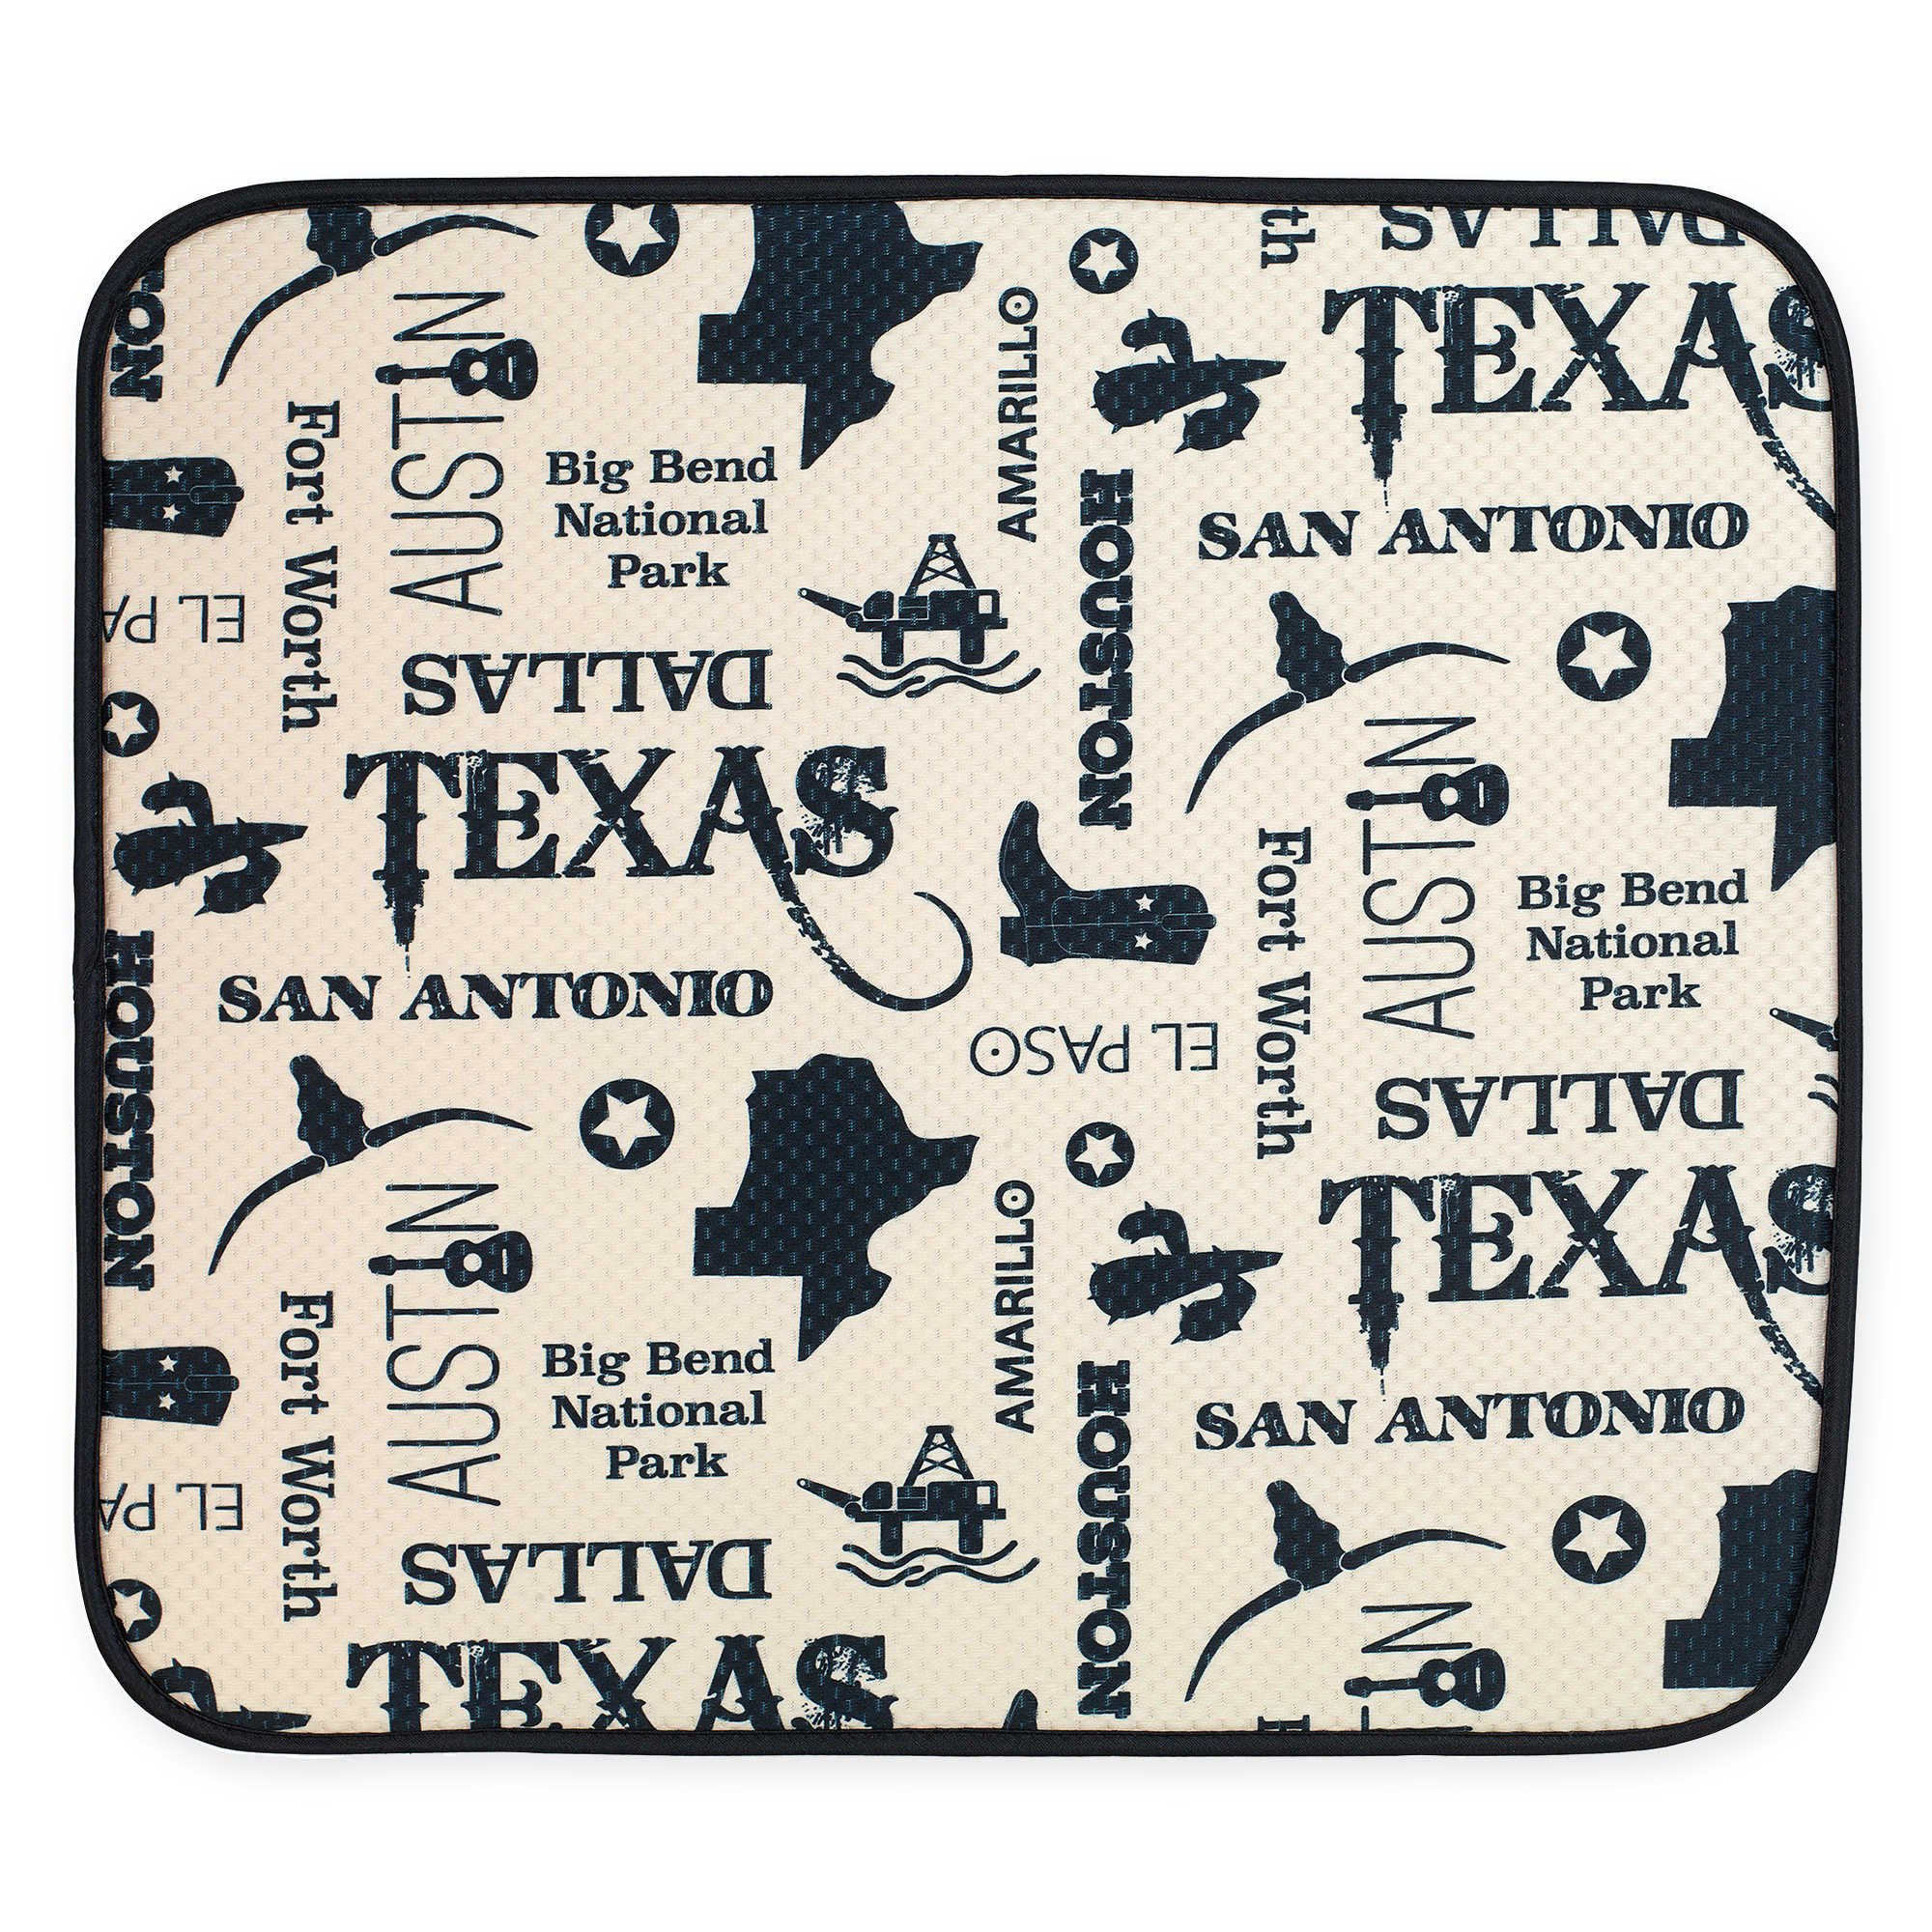 Schroeder & Tremayne The Original Dish Drying Mat with Texas Print in Cream/Black 16 Inches x 18 Inches by The Original